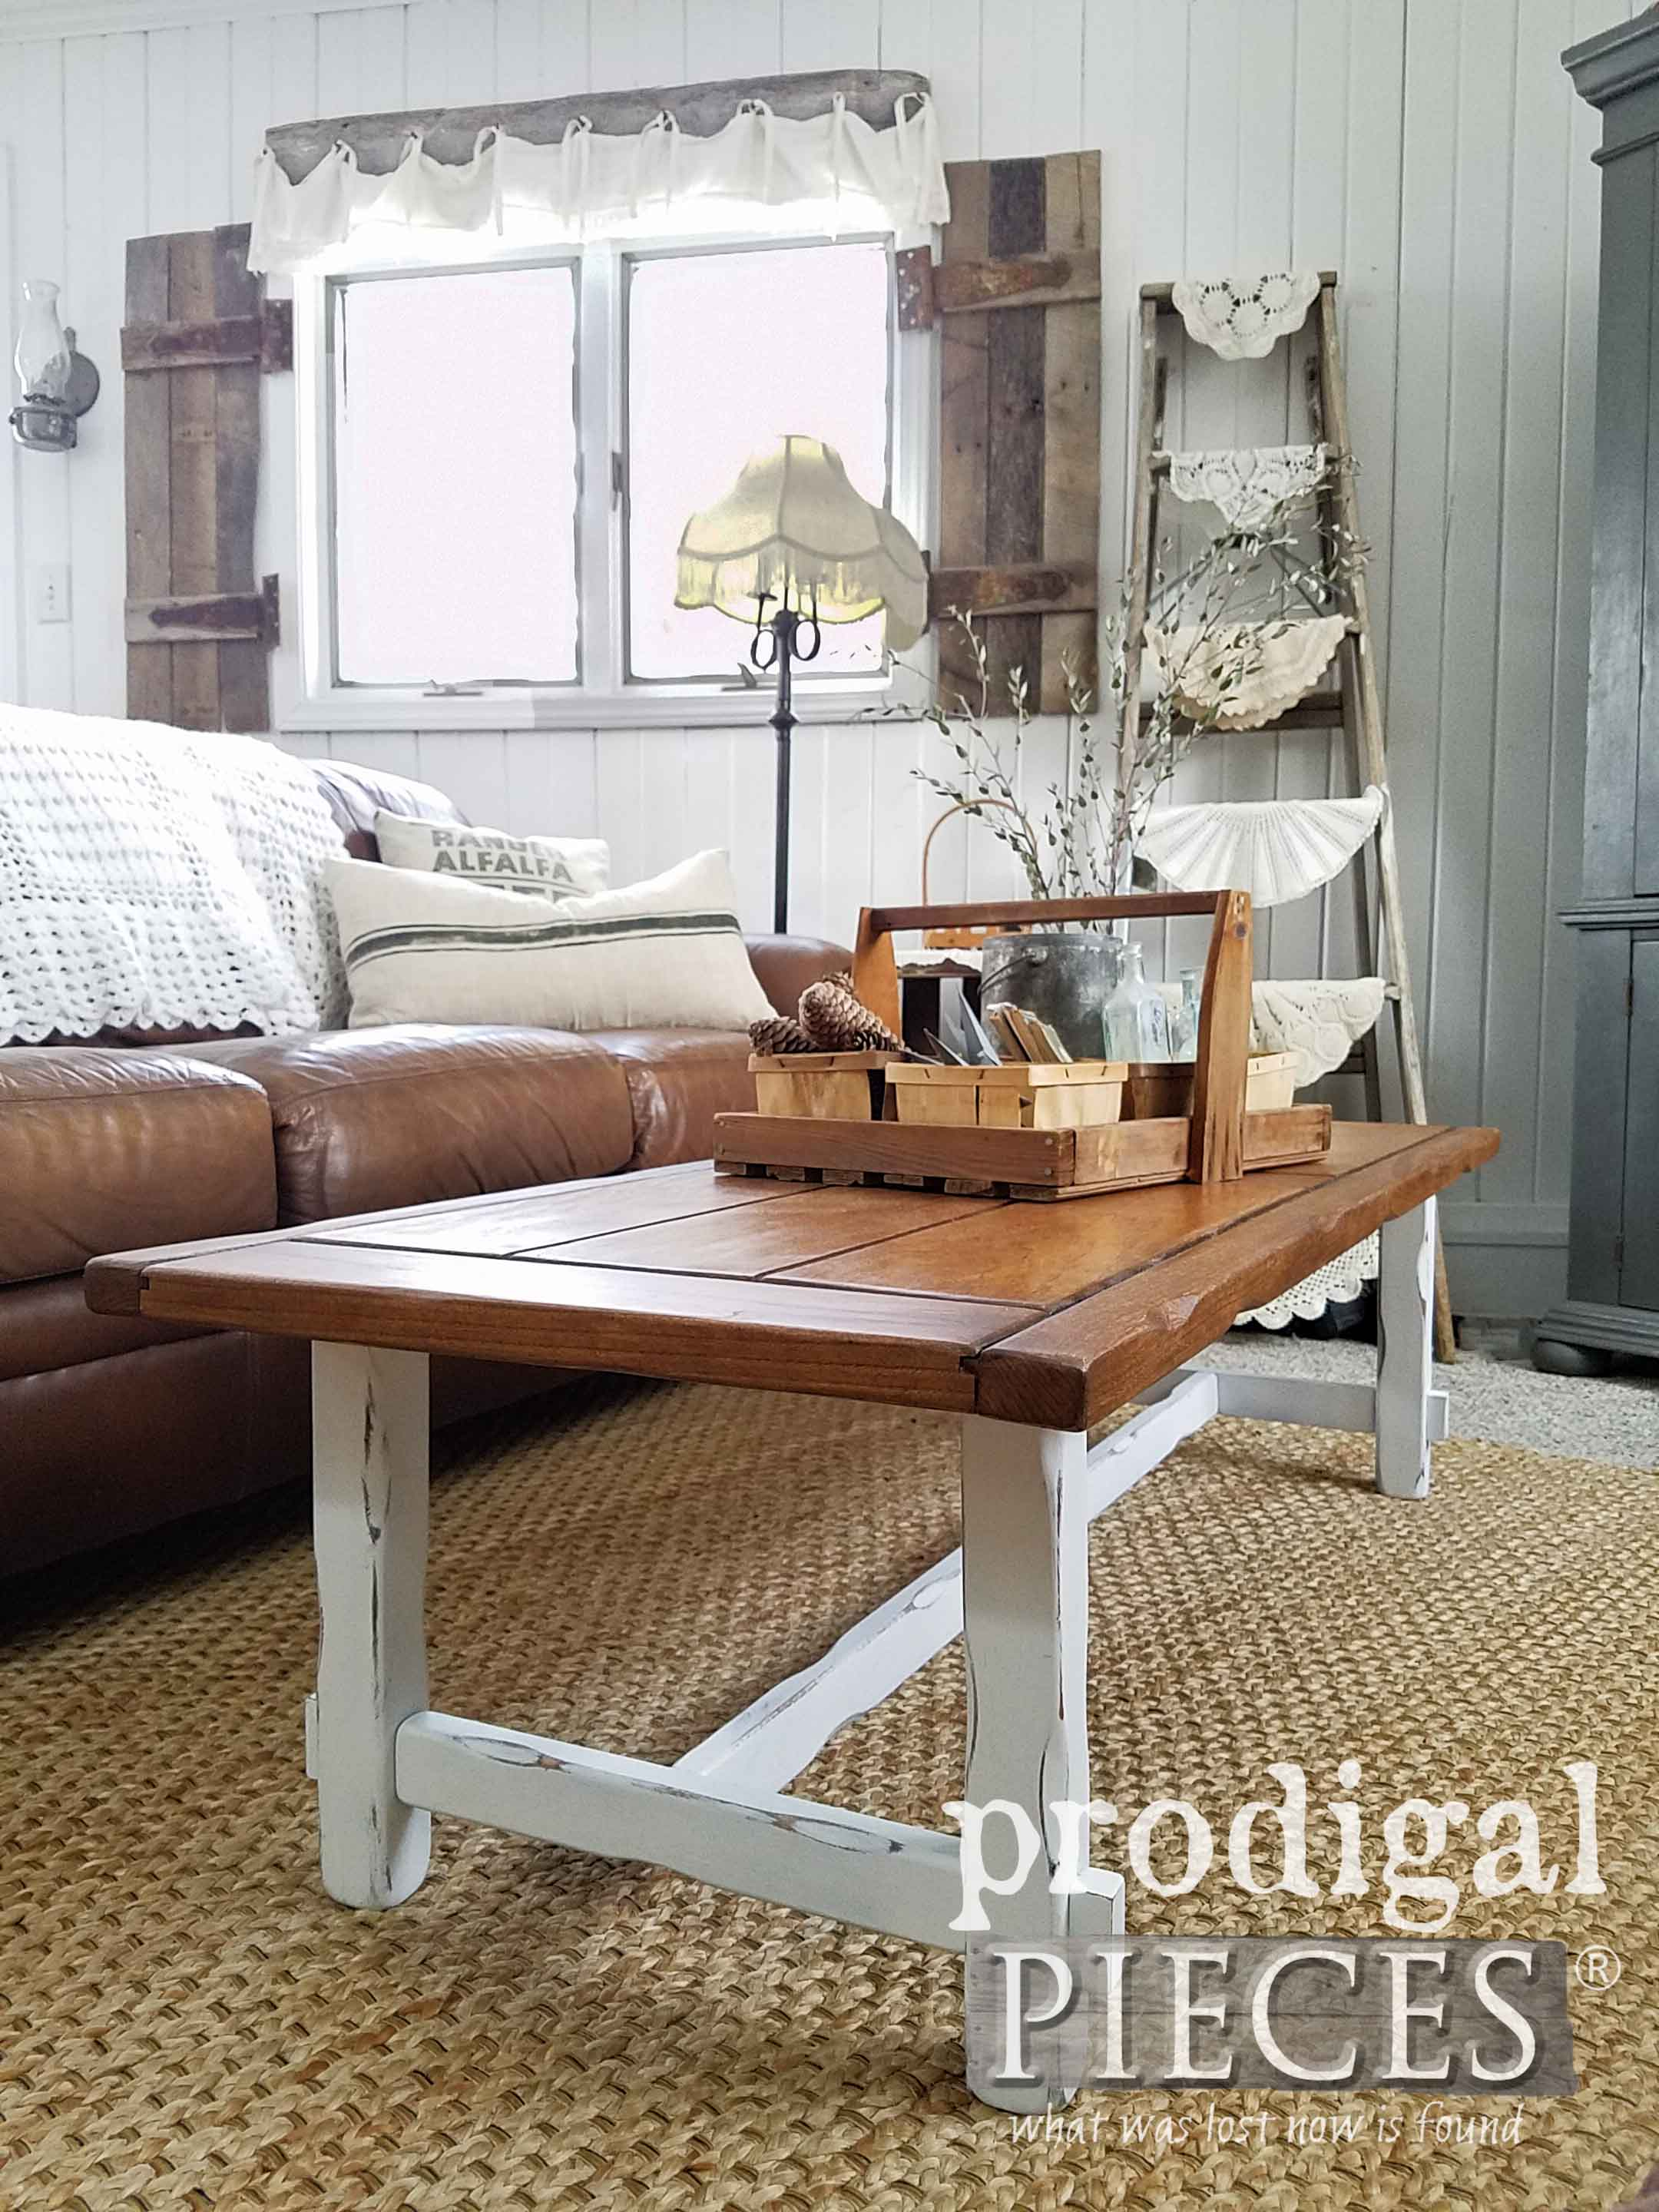 Thrifted Farmhouse Coffee Table - get the DIY details at Prodigal Pieces | prodigalpieces.com